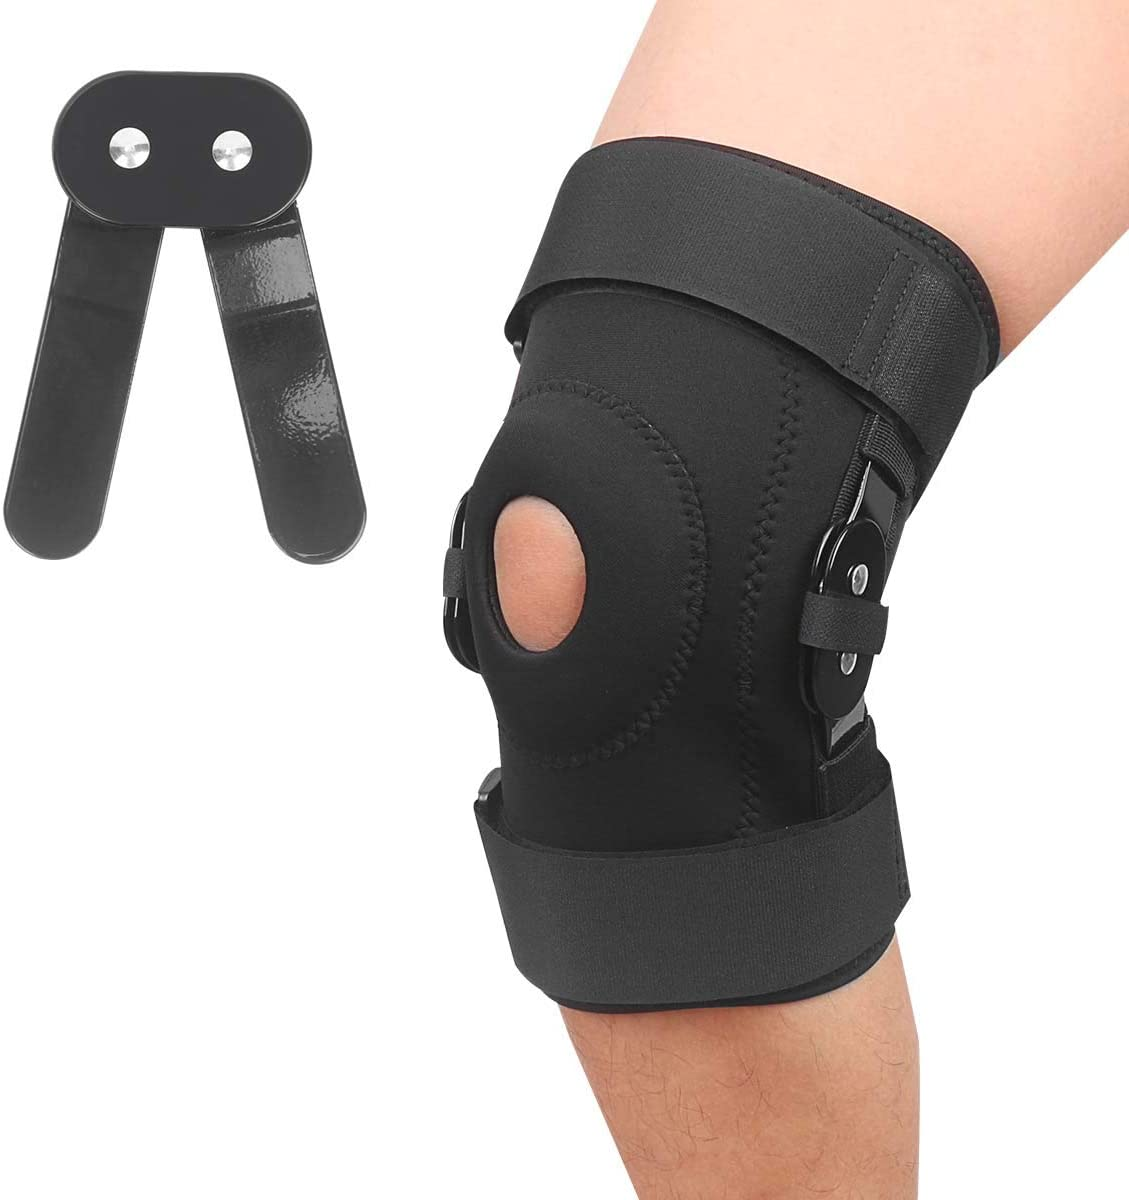 Hinged Knee Brace Support for Swollen Arthritis, Ligament Torn Meniscus Injurie, Tendon, Injury Recovery with Adjustable Strapping, Sports Exercise, Leg Stabilizer for Men & Women (X-Large)